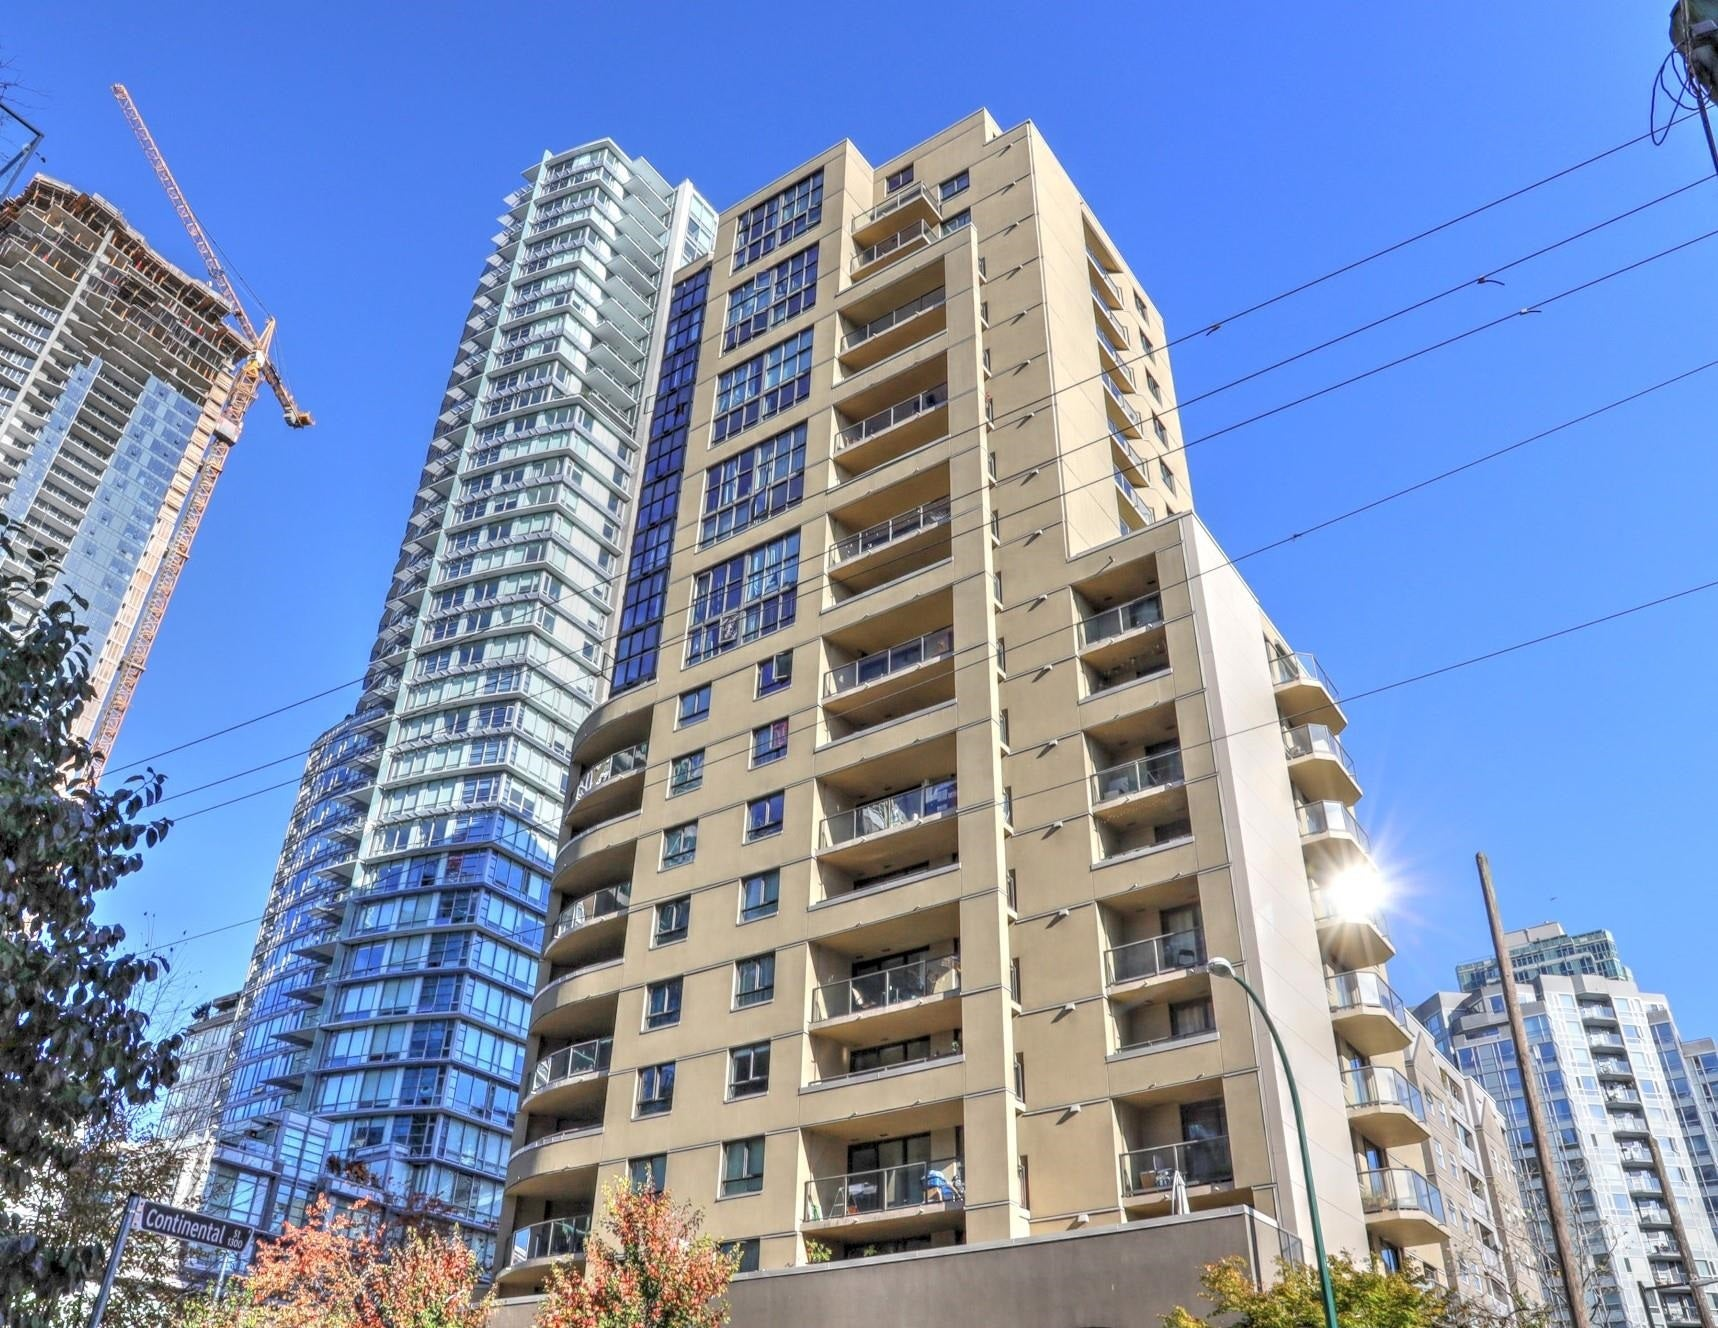 1602 789 DRAKE STREET - Downtown VW Apartment/Condo for sale, 2 Bedrooms (R2617559) - #1